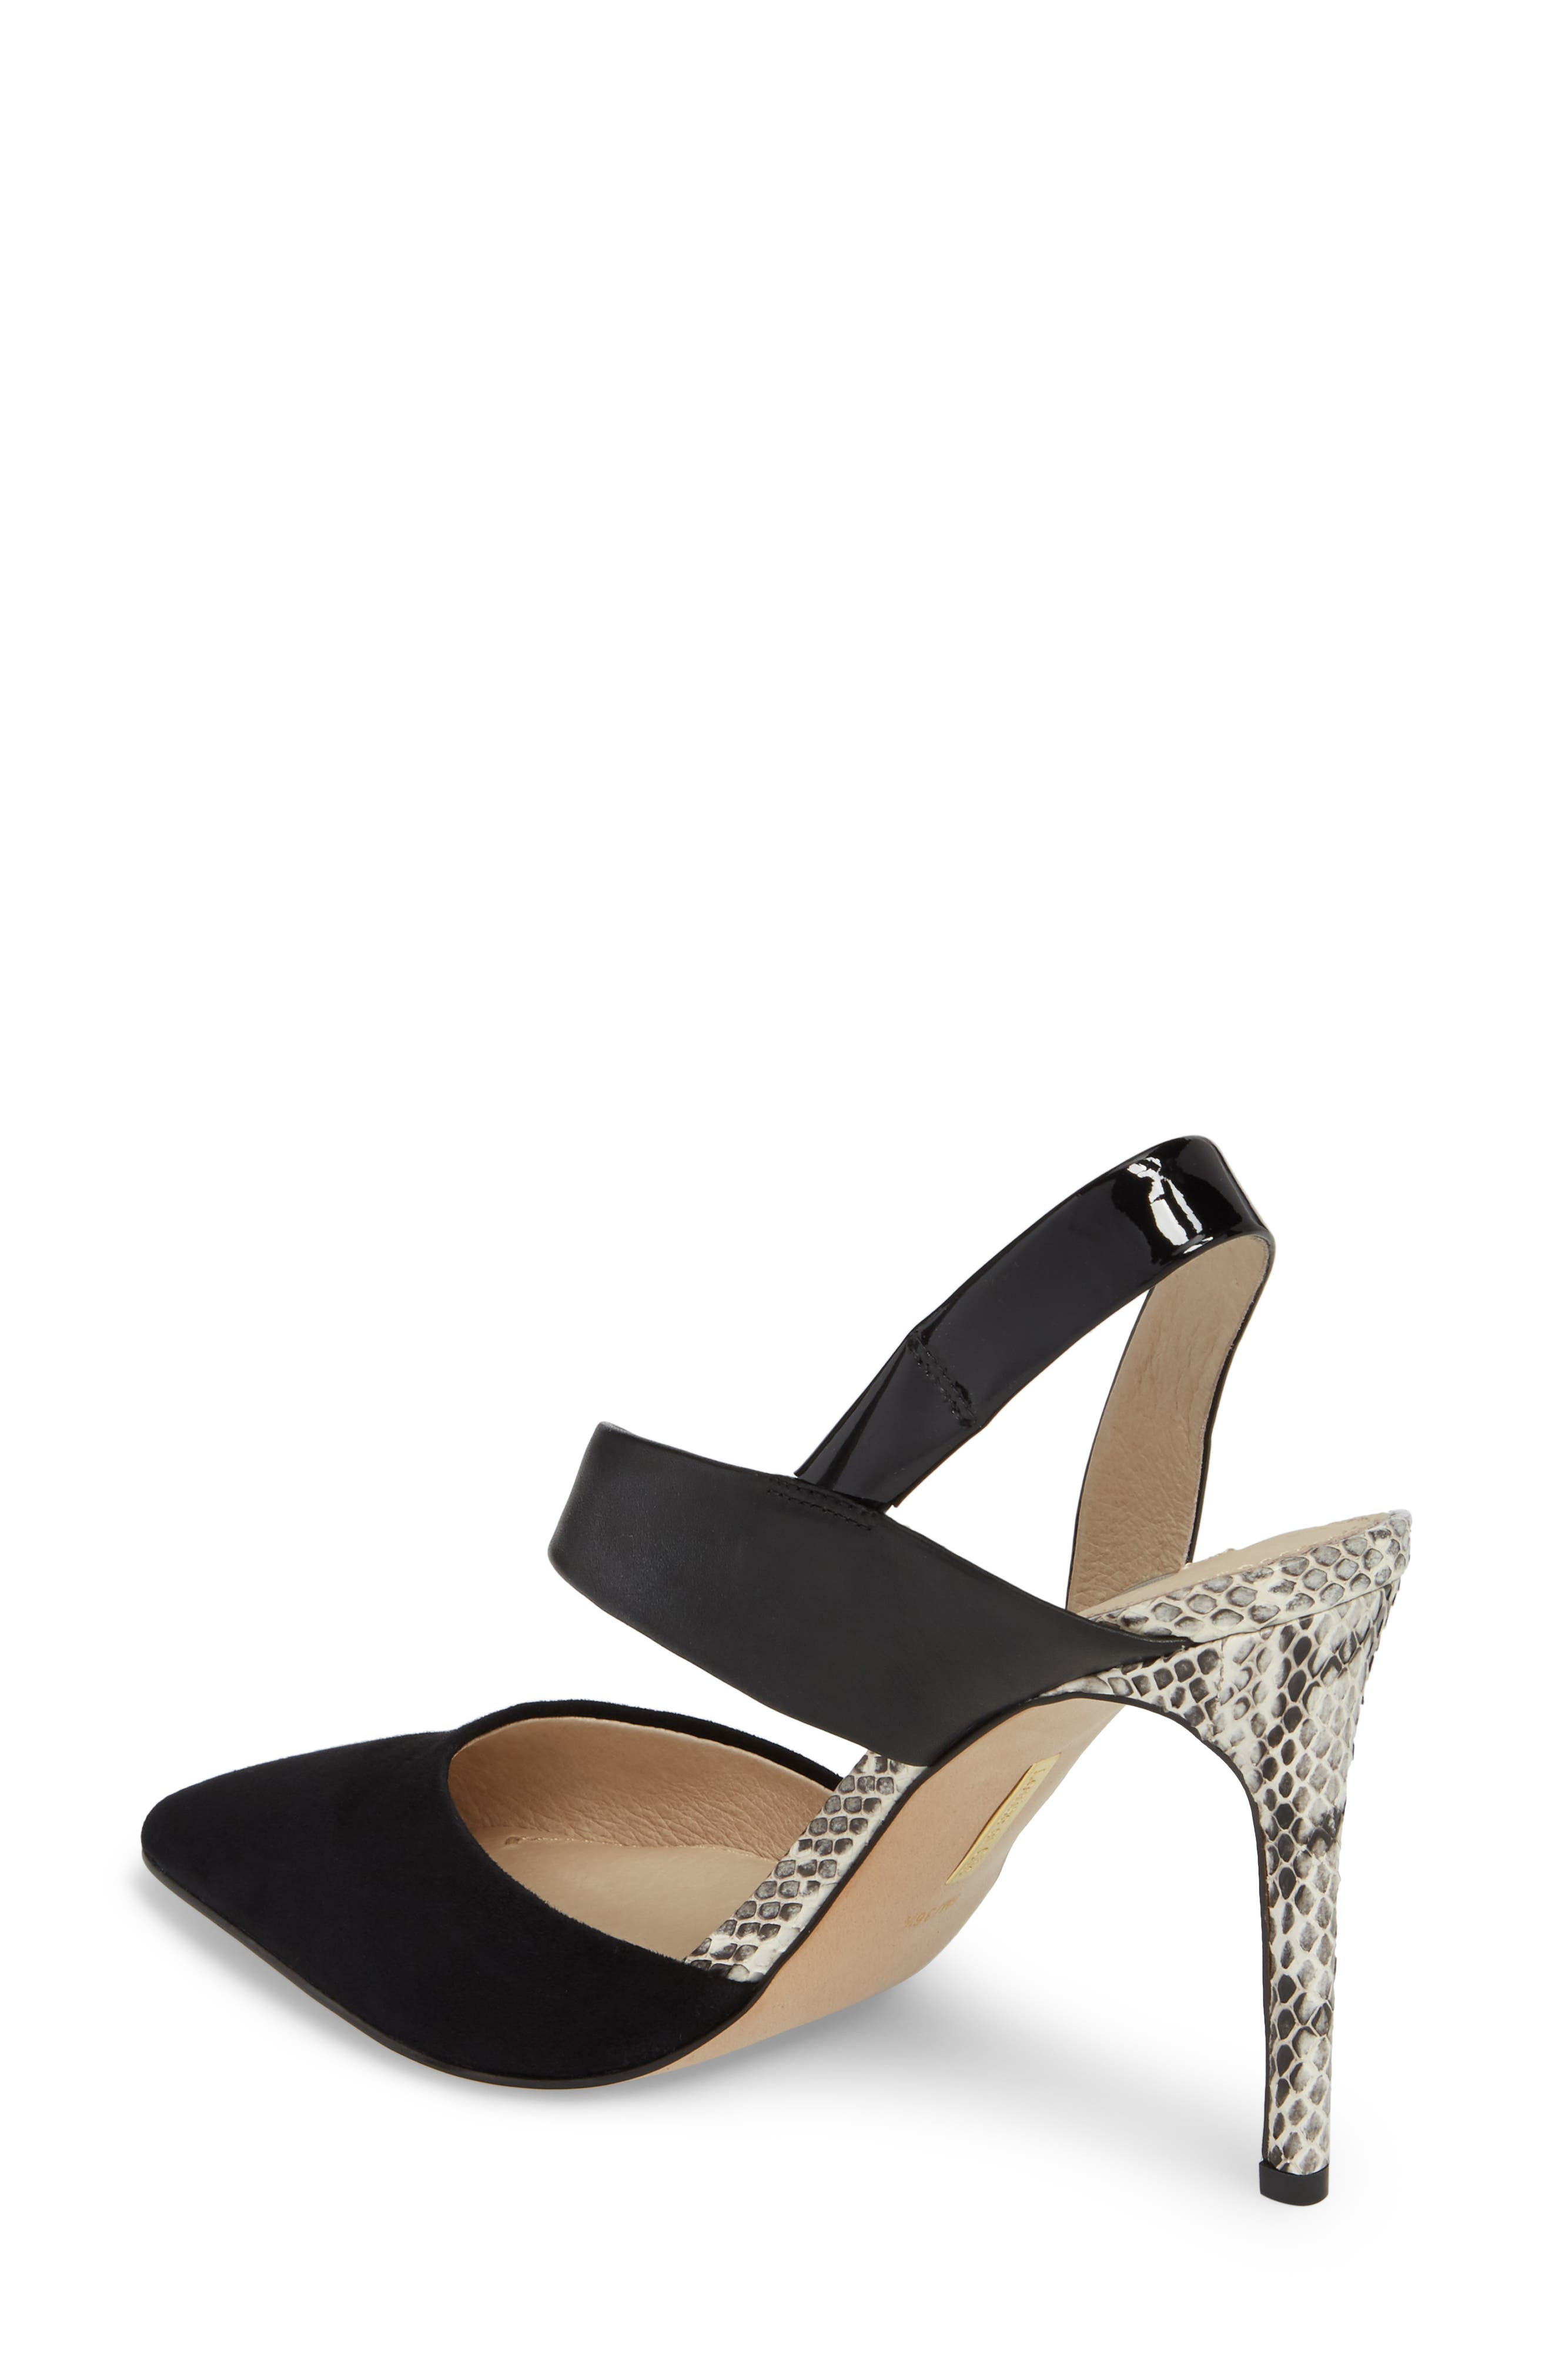 Jerry Pointy Toe Slingback Pump,                             Alternate thumbnail 2, color,                             Black Suede